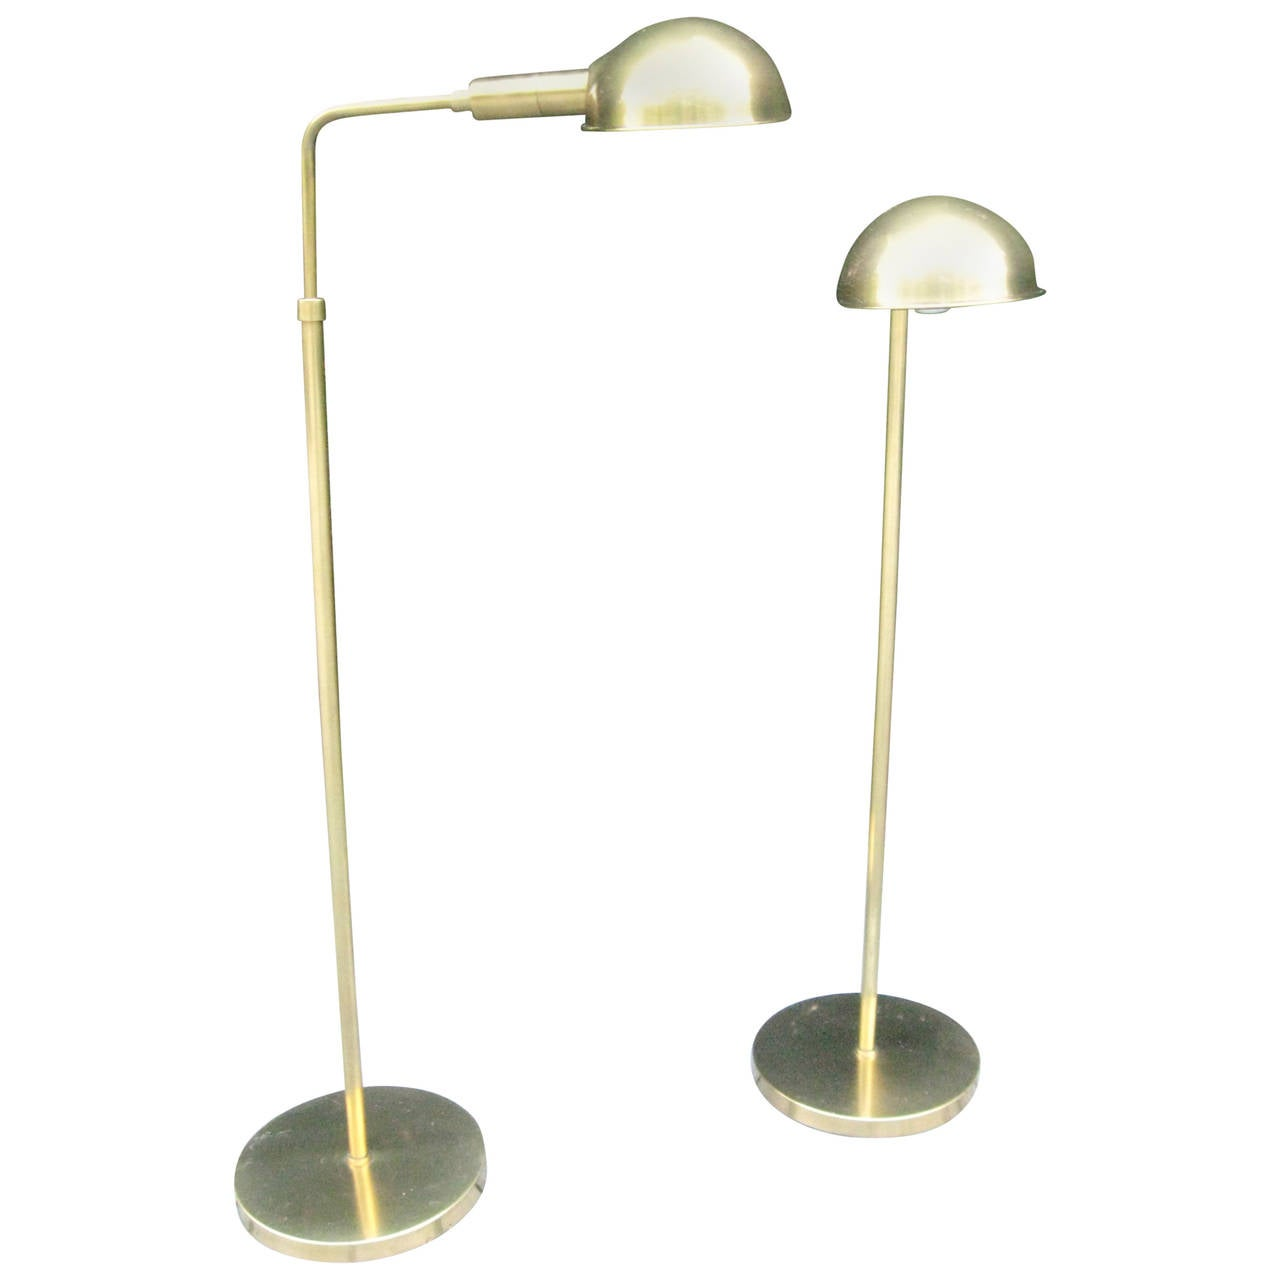 Vintage Pair of Adjustable Brass Floor/Reading Lamps by Chapman